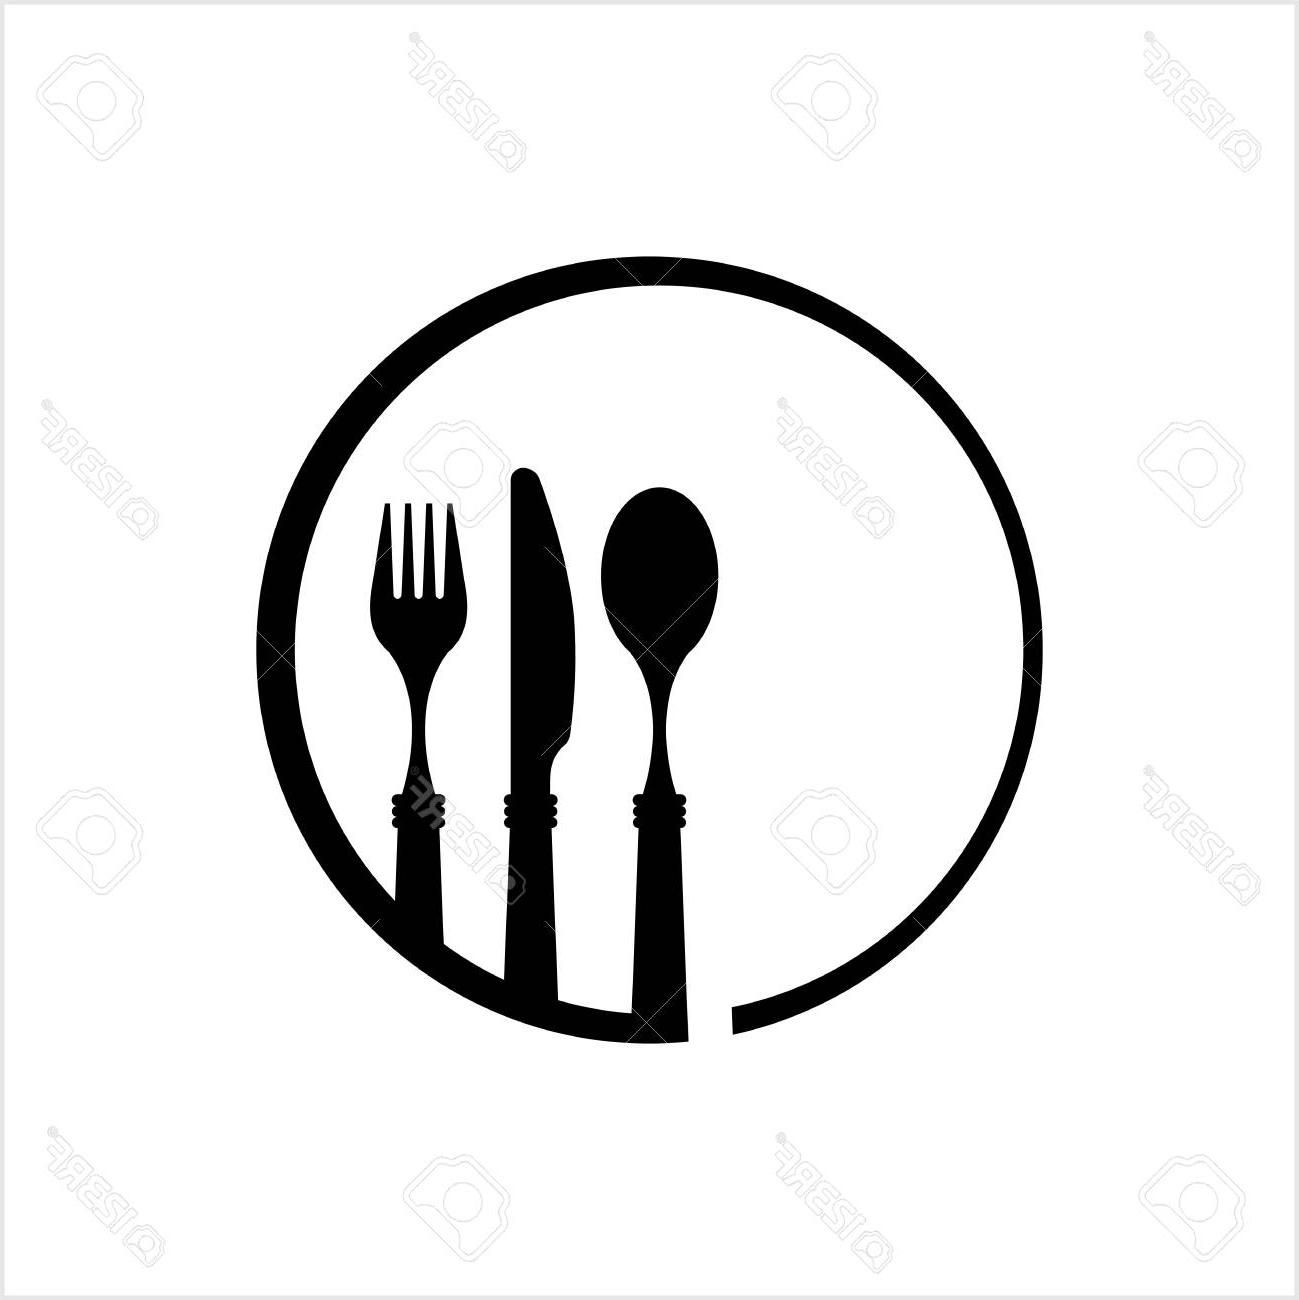 Fork Knife Spoon Vector At Vectorified